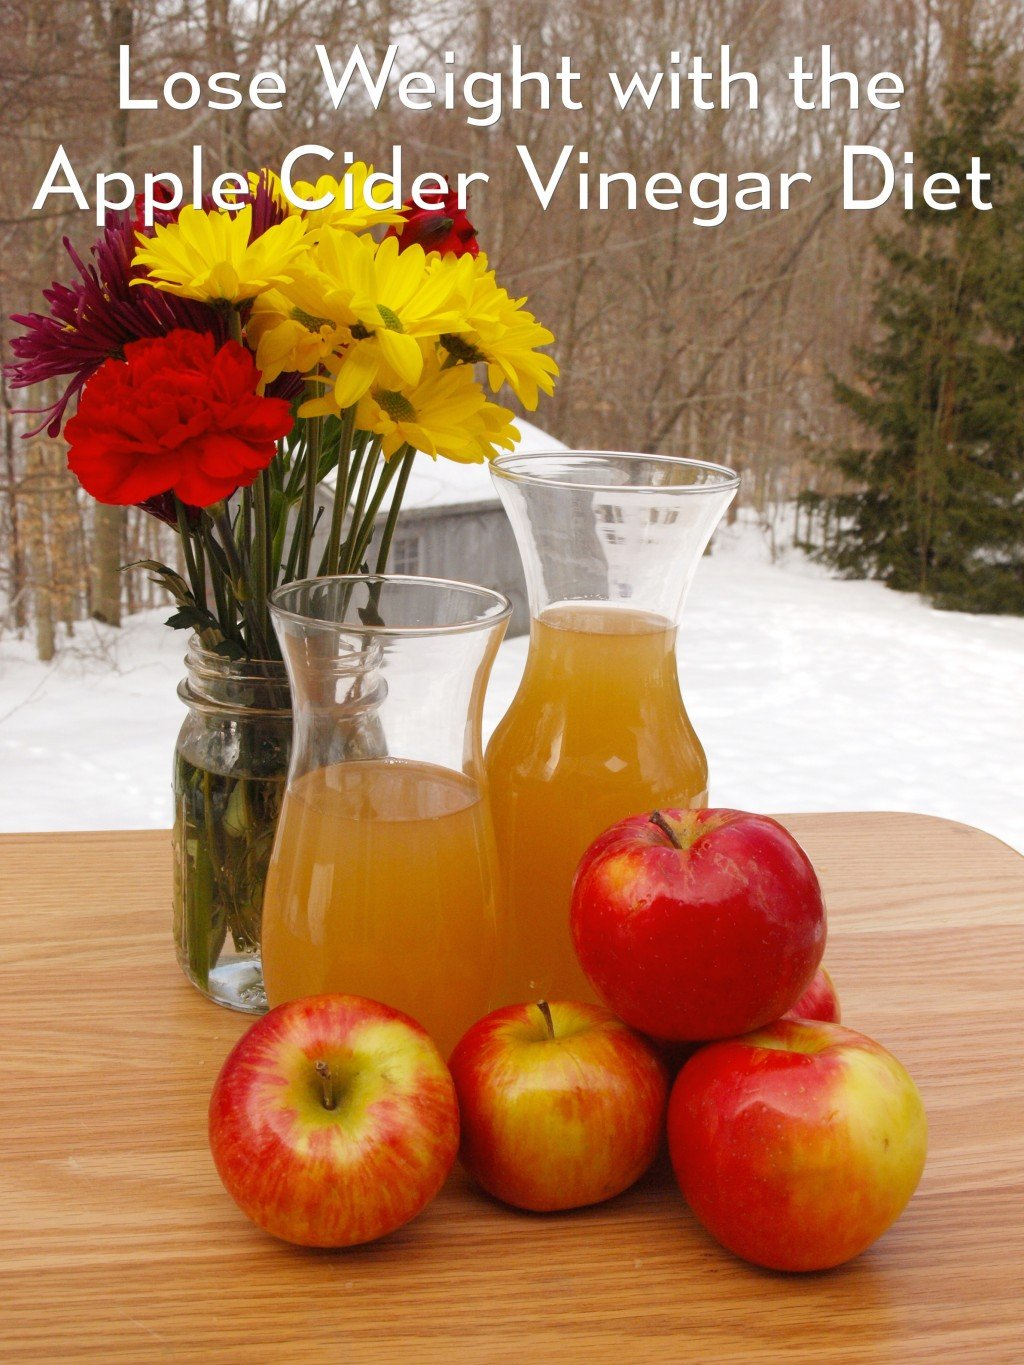 apple cider vinegar instructions for weight loss